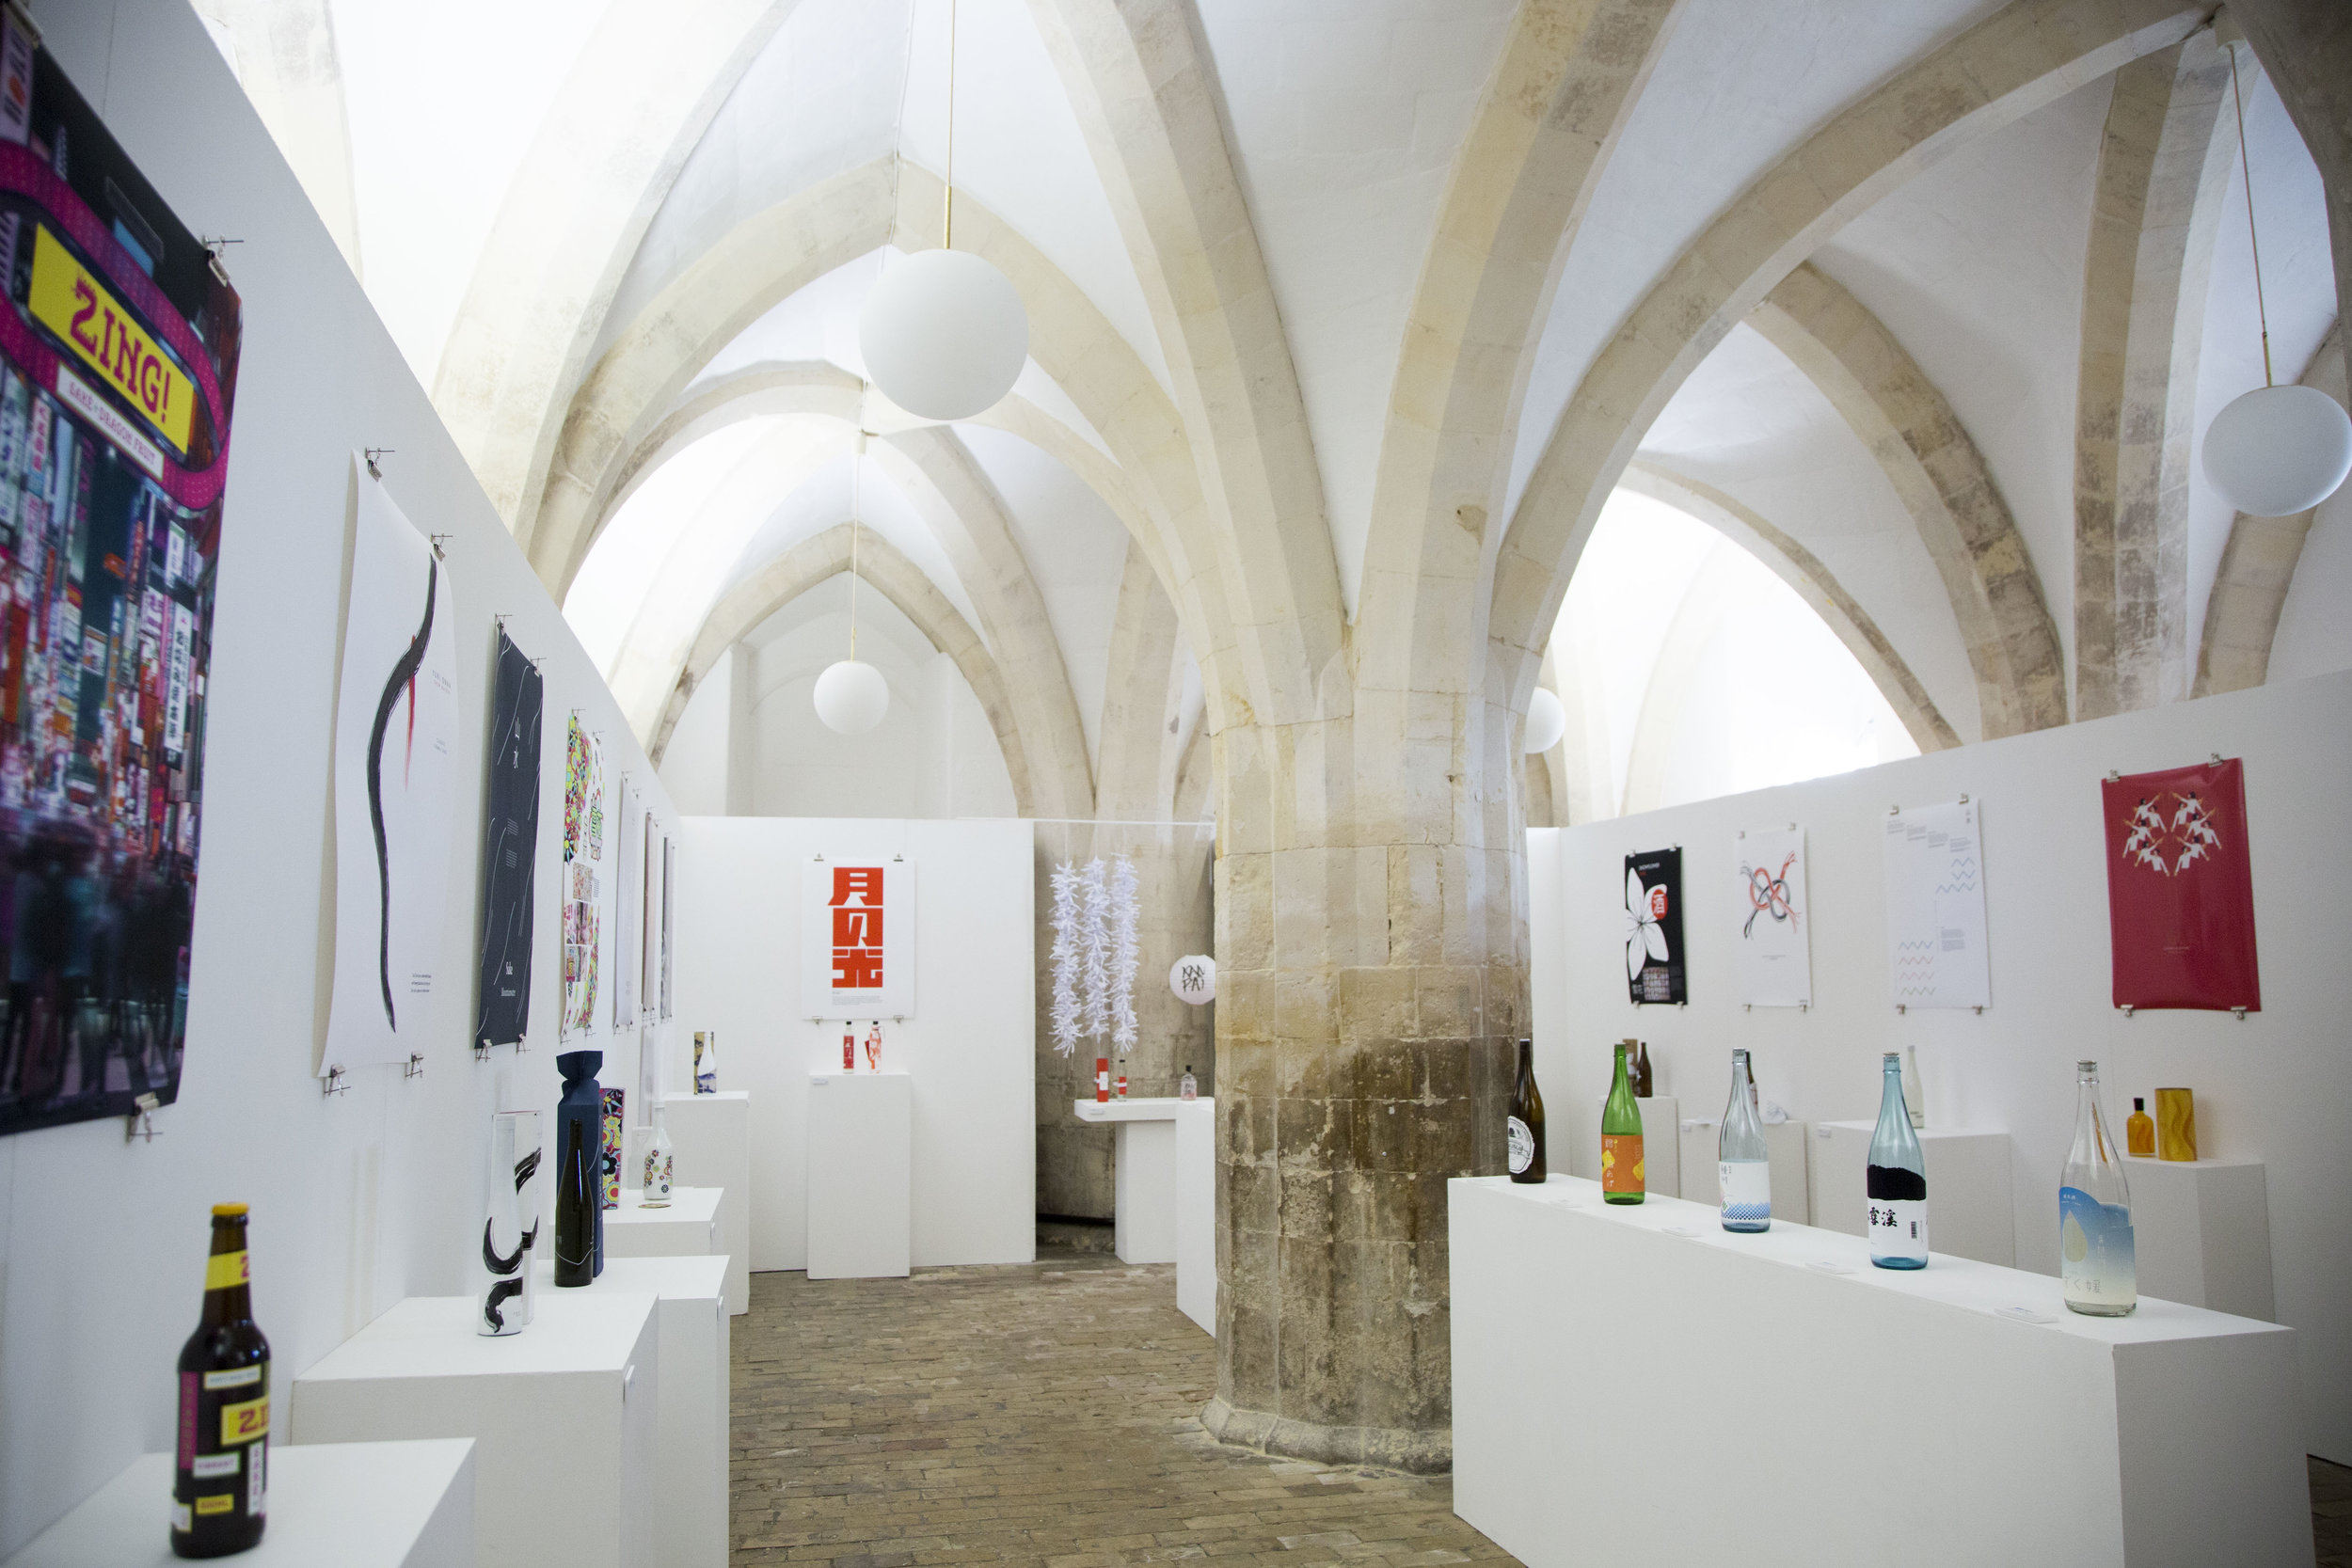 SAKE exhibition in the Crypt_HH063.JPG